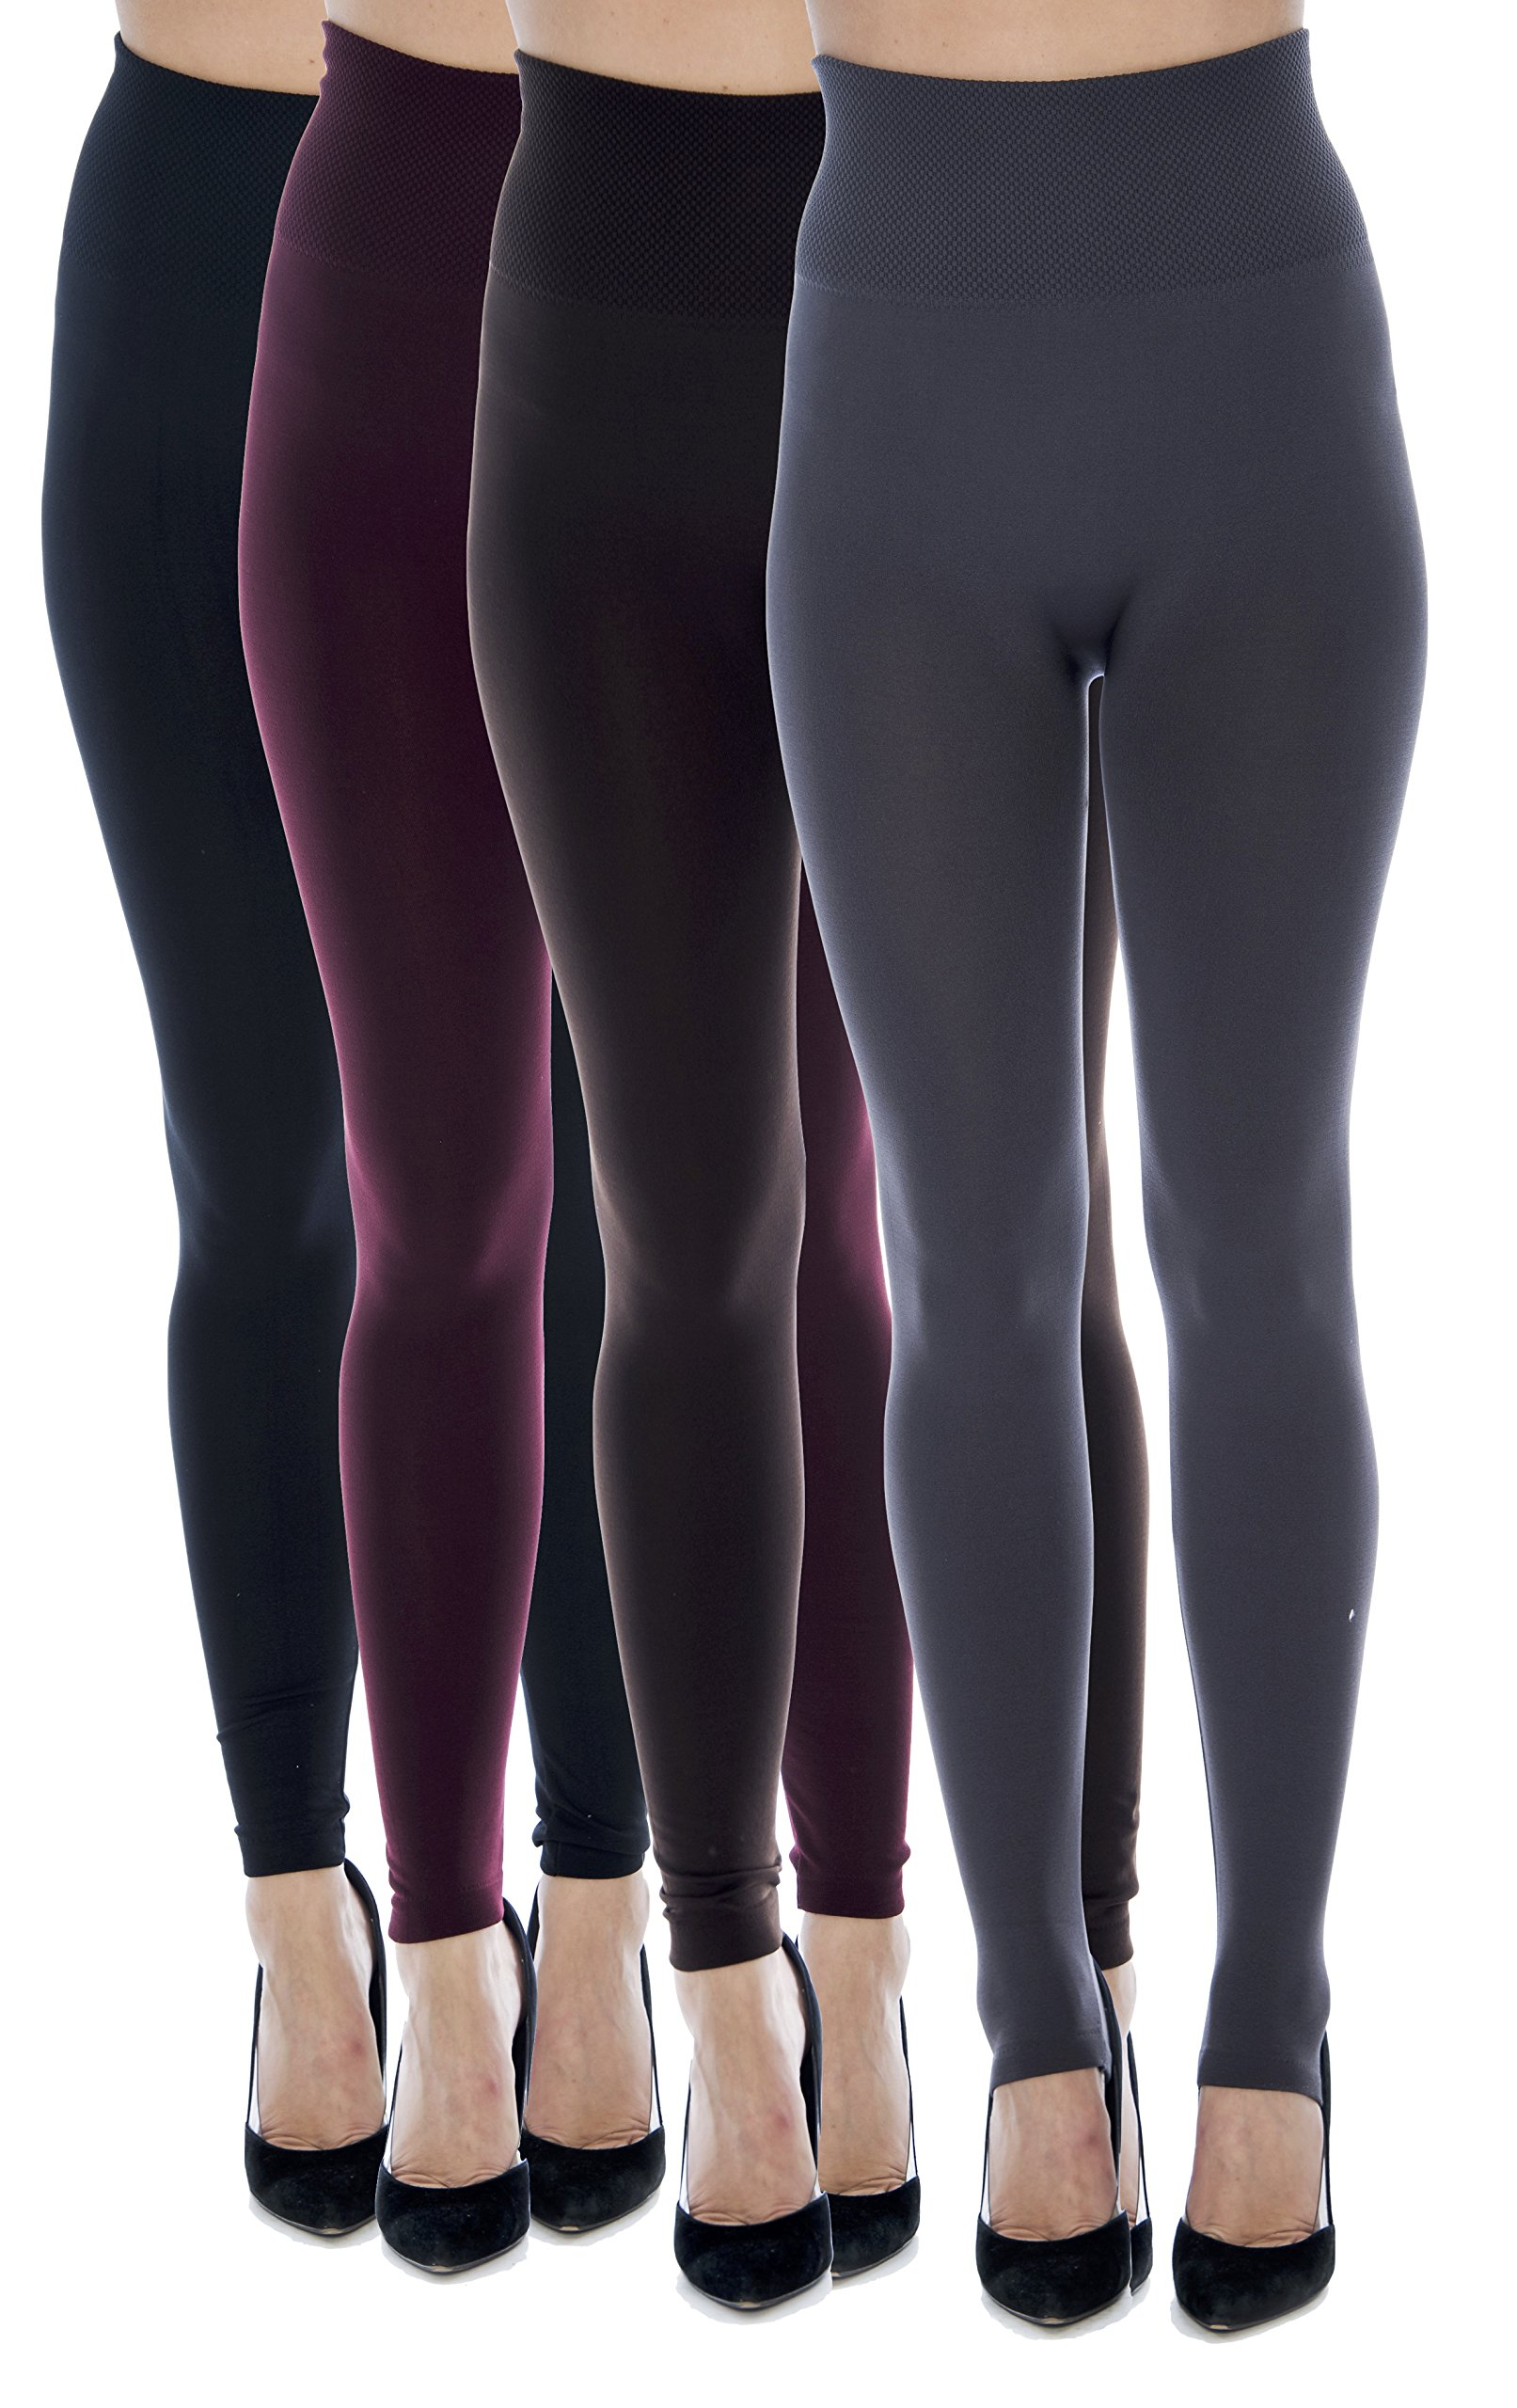 Unique Styles Fleece Lined Leggings for Women Wide Waist Regular Plus Size Pack